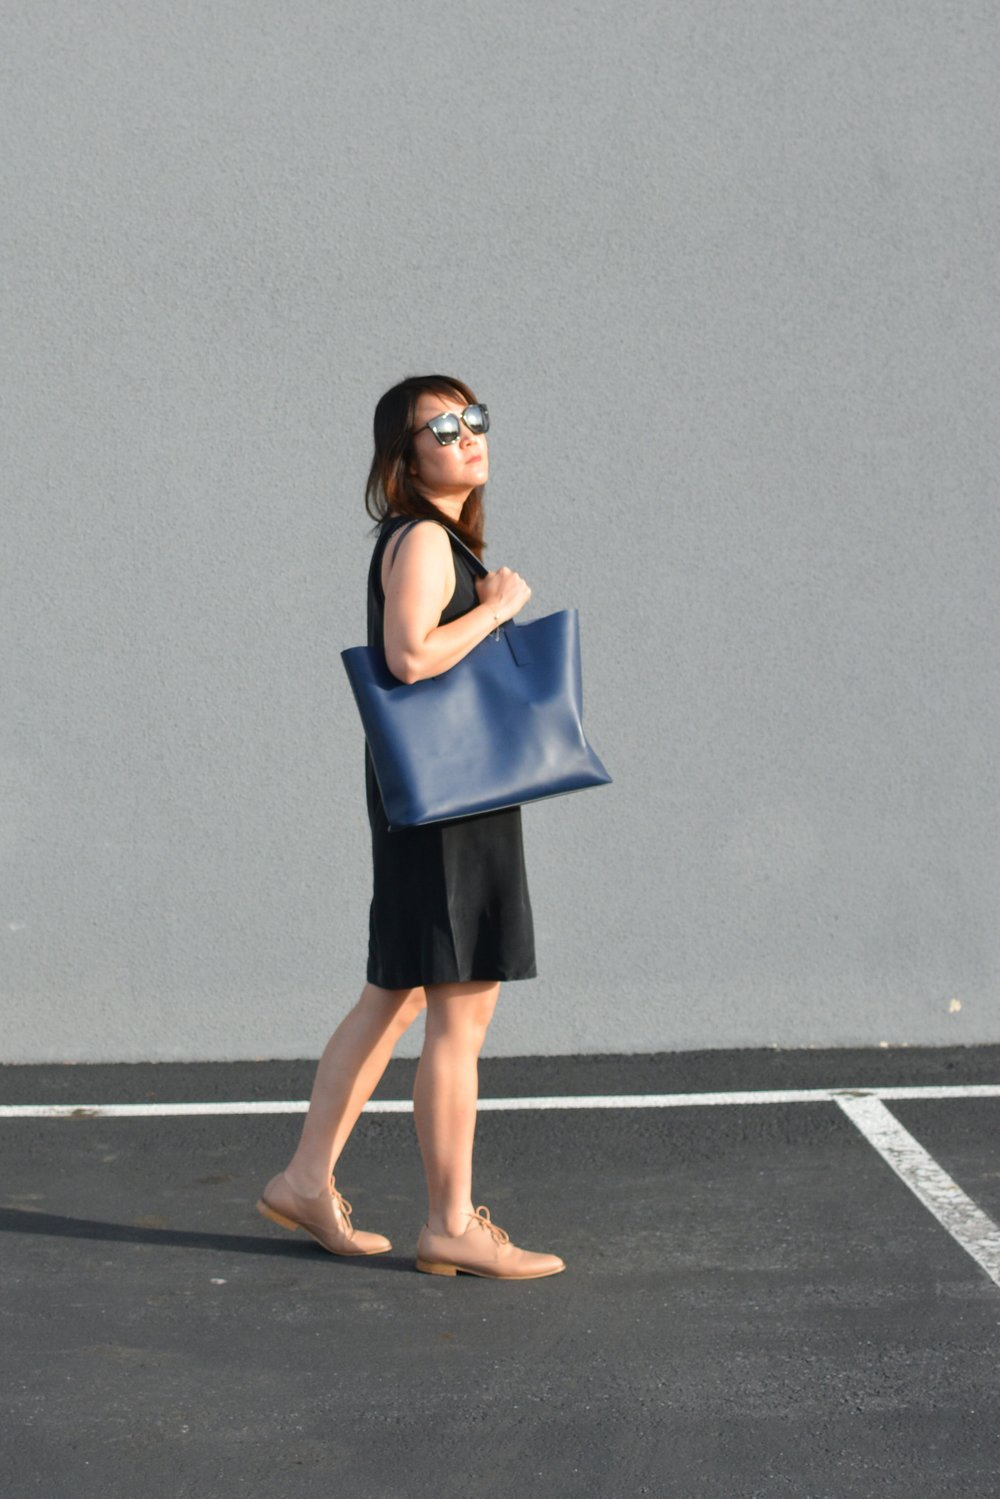 Everlane Review The Day Market Tote (1 of 2)-min.jpg